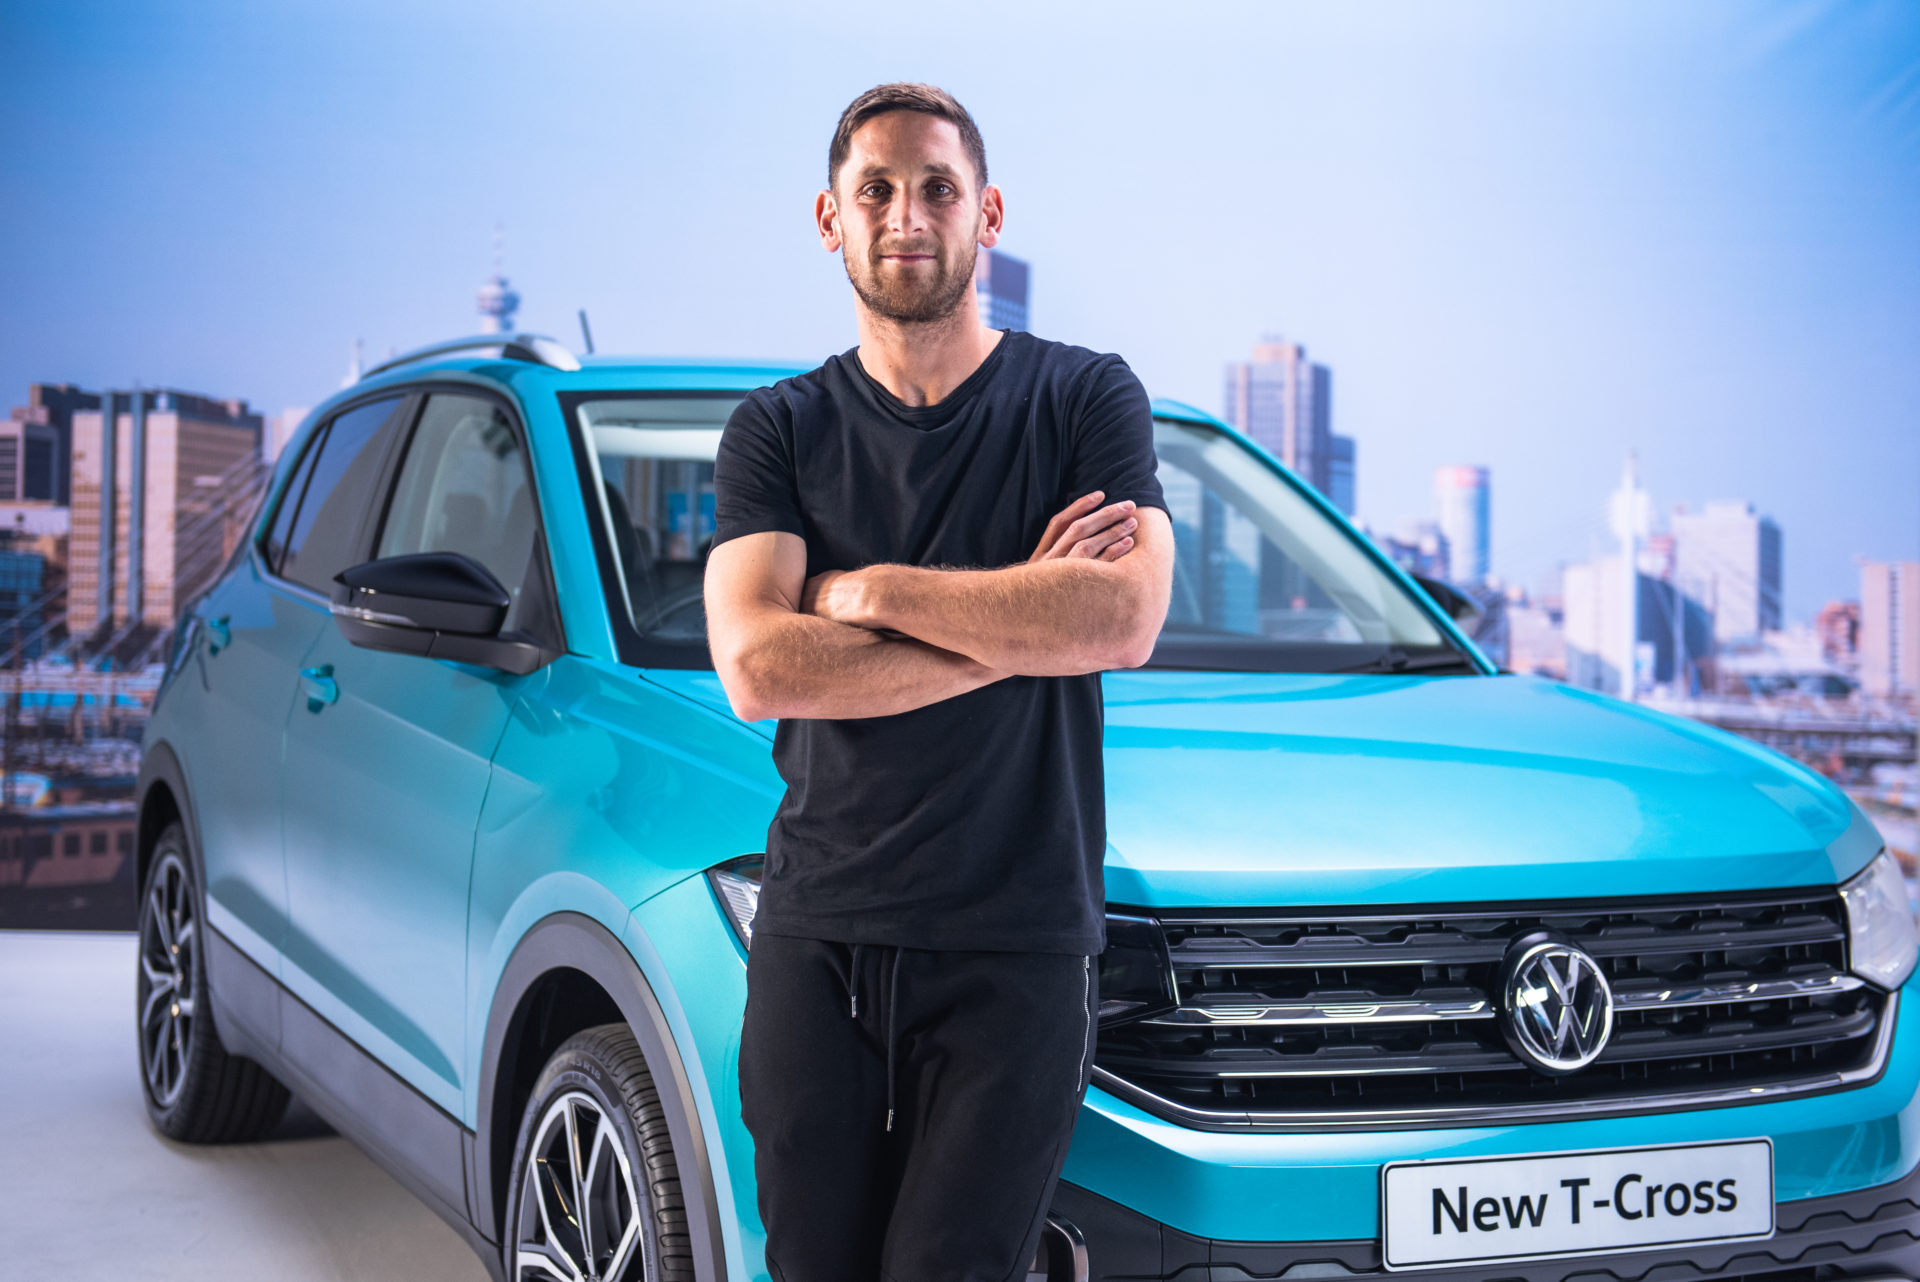 VW TCross in Johannesburg, South Africa, on August 8, 2019.